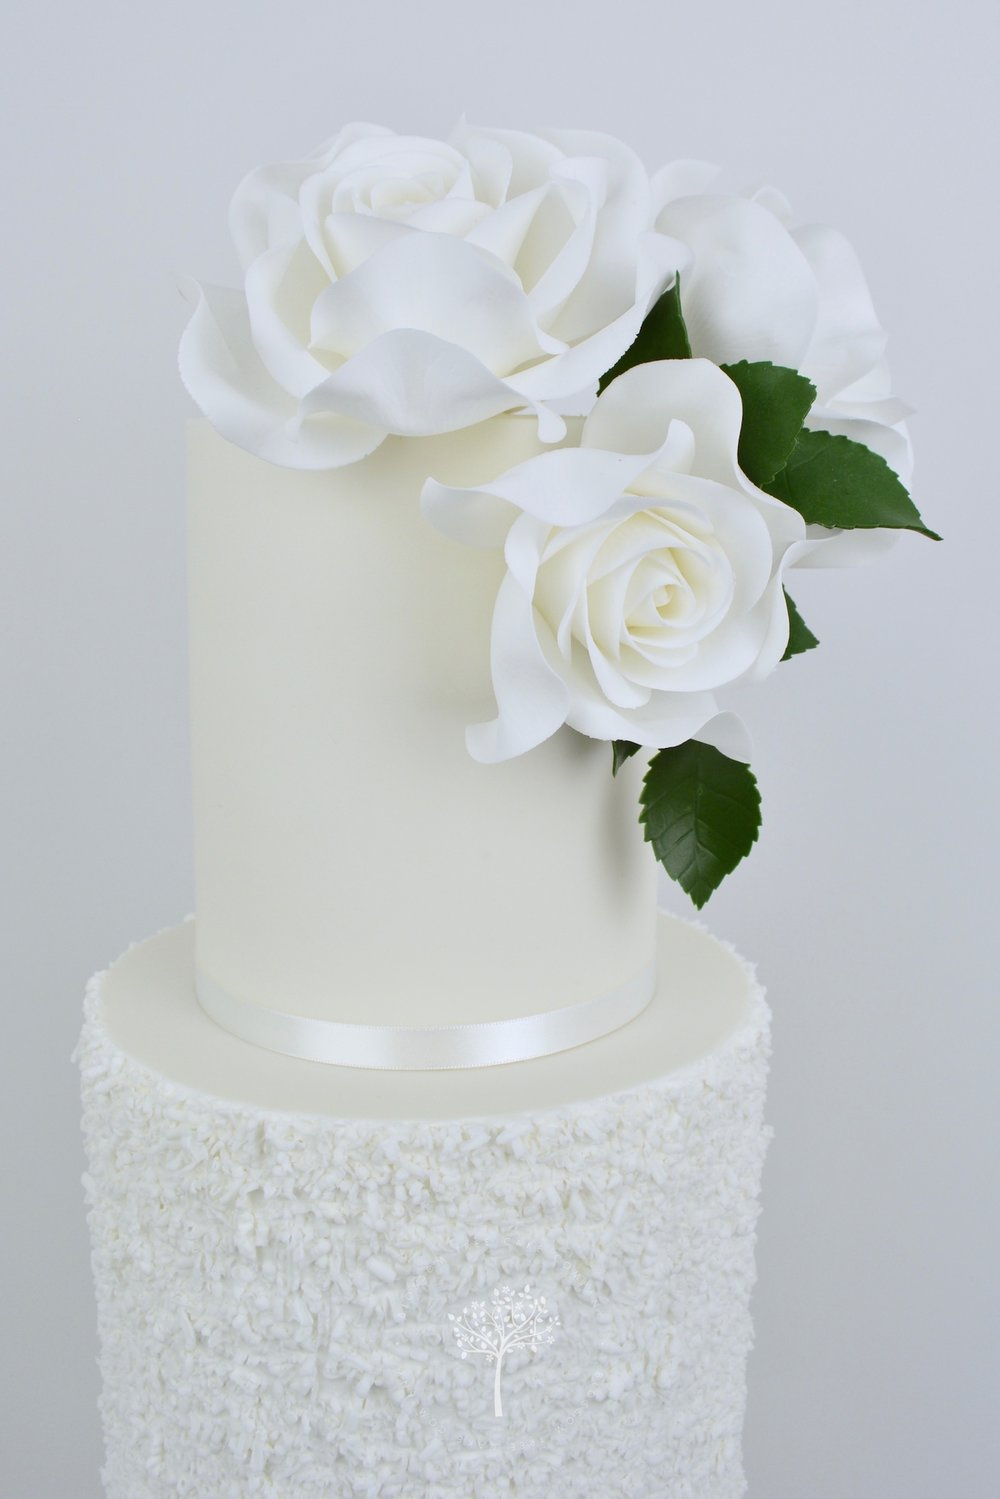 White Rose and Silver wedding cake by Blossom Tree Cake Company Harrogate North Yorkshire - top roses.jpg